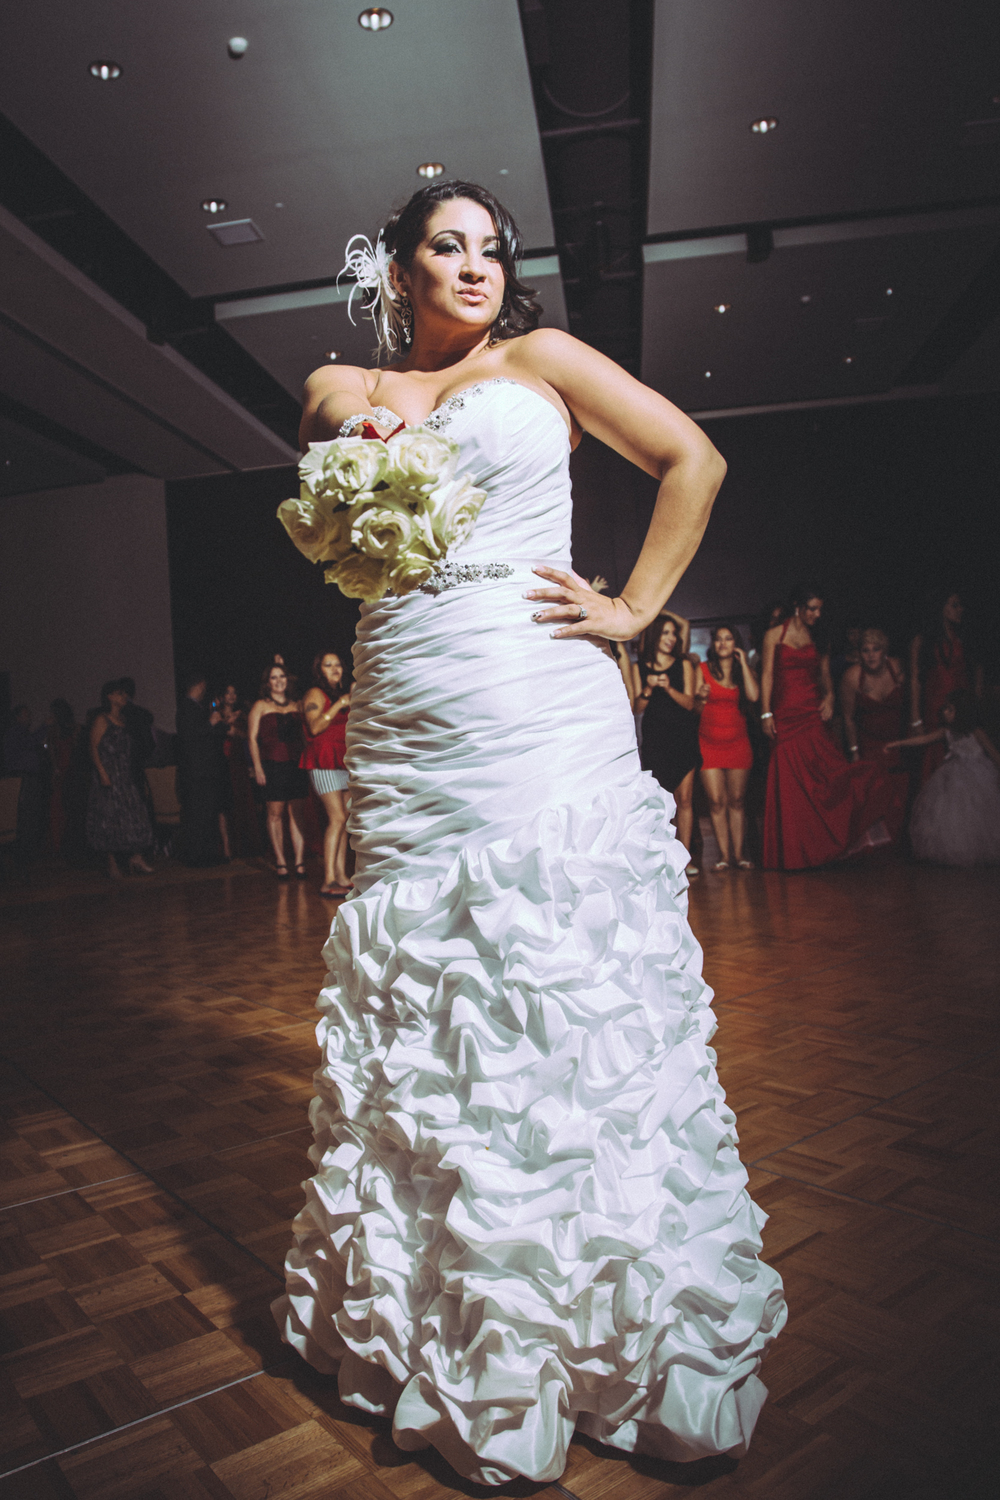 Orlando Wedding-Brazen Photo-Lopez-30.jpg